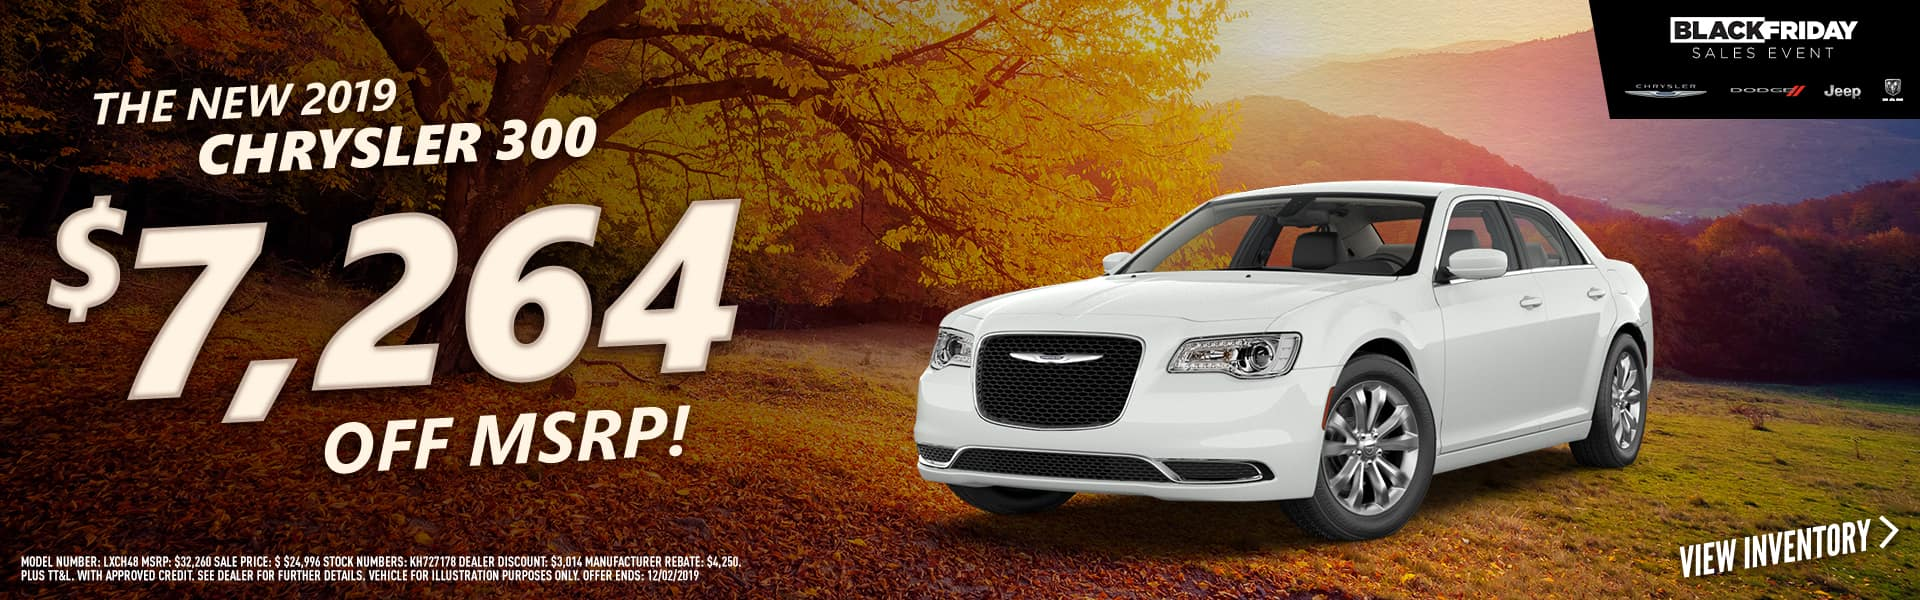 2019 Chrysler 300 - $7,264 off MSRP